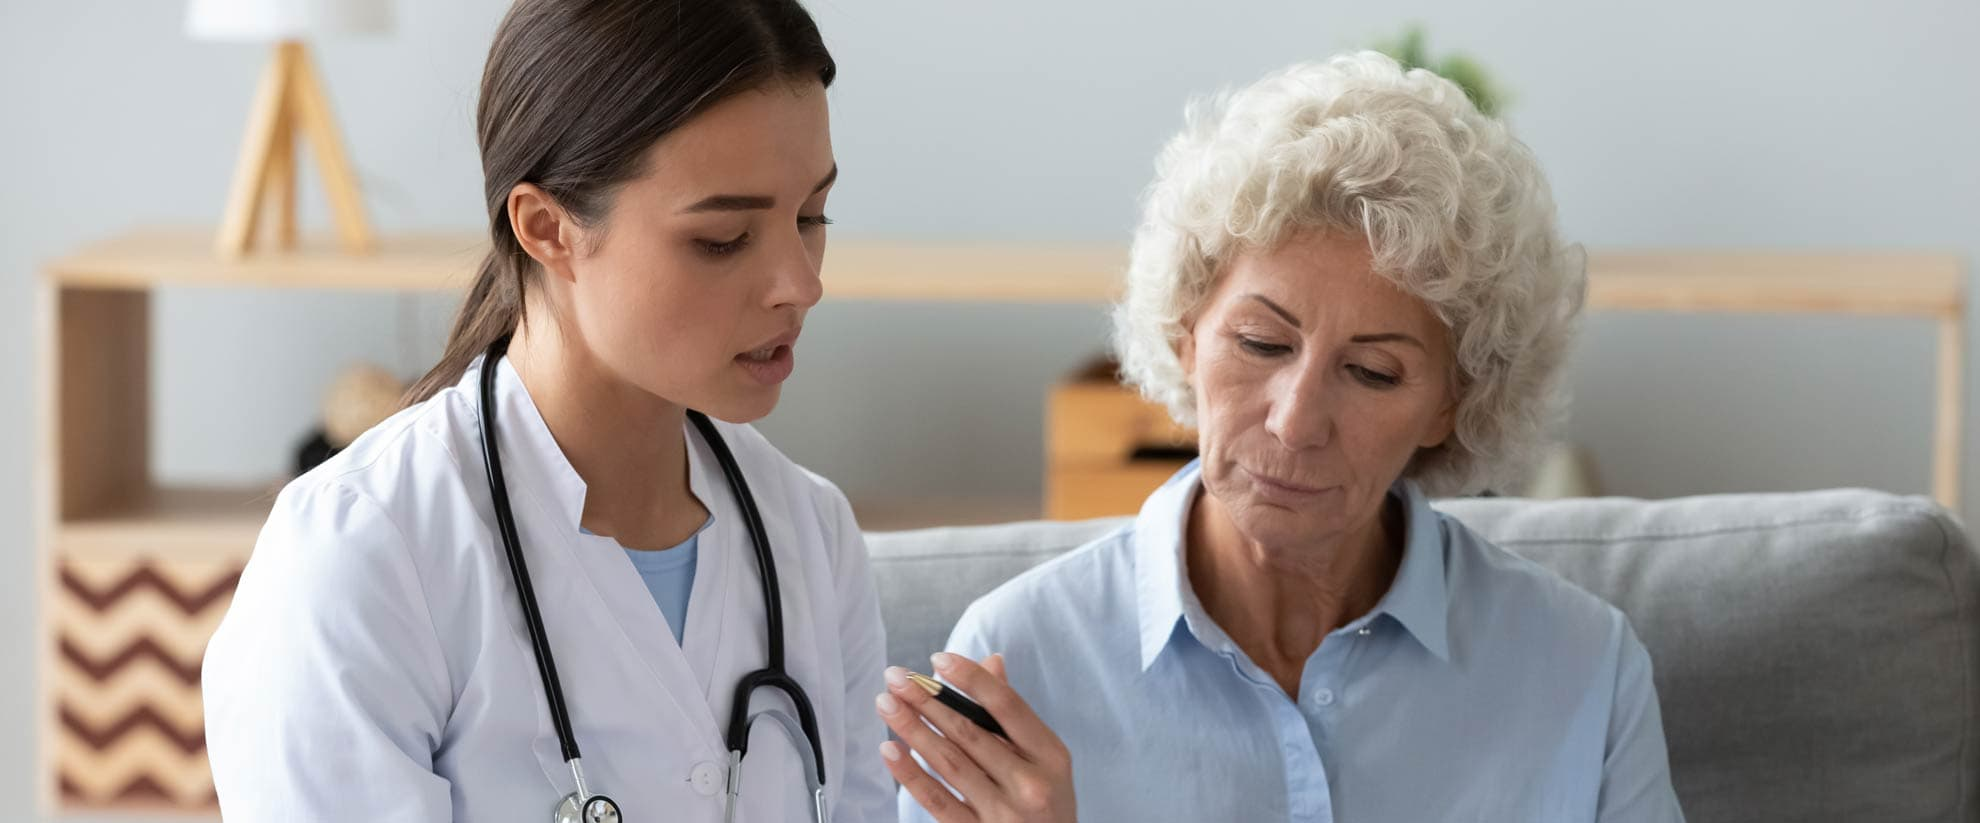 Image of doctor with elderly woman giving information on eos asthma